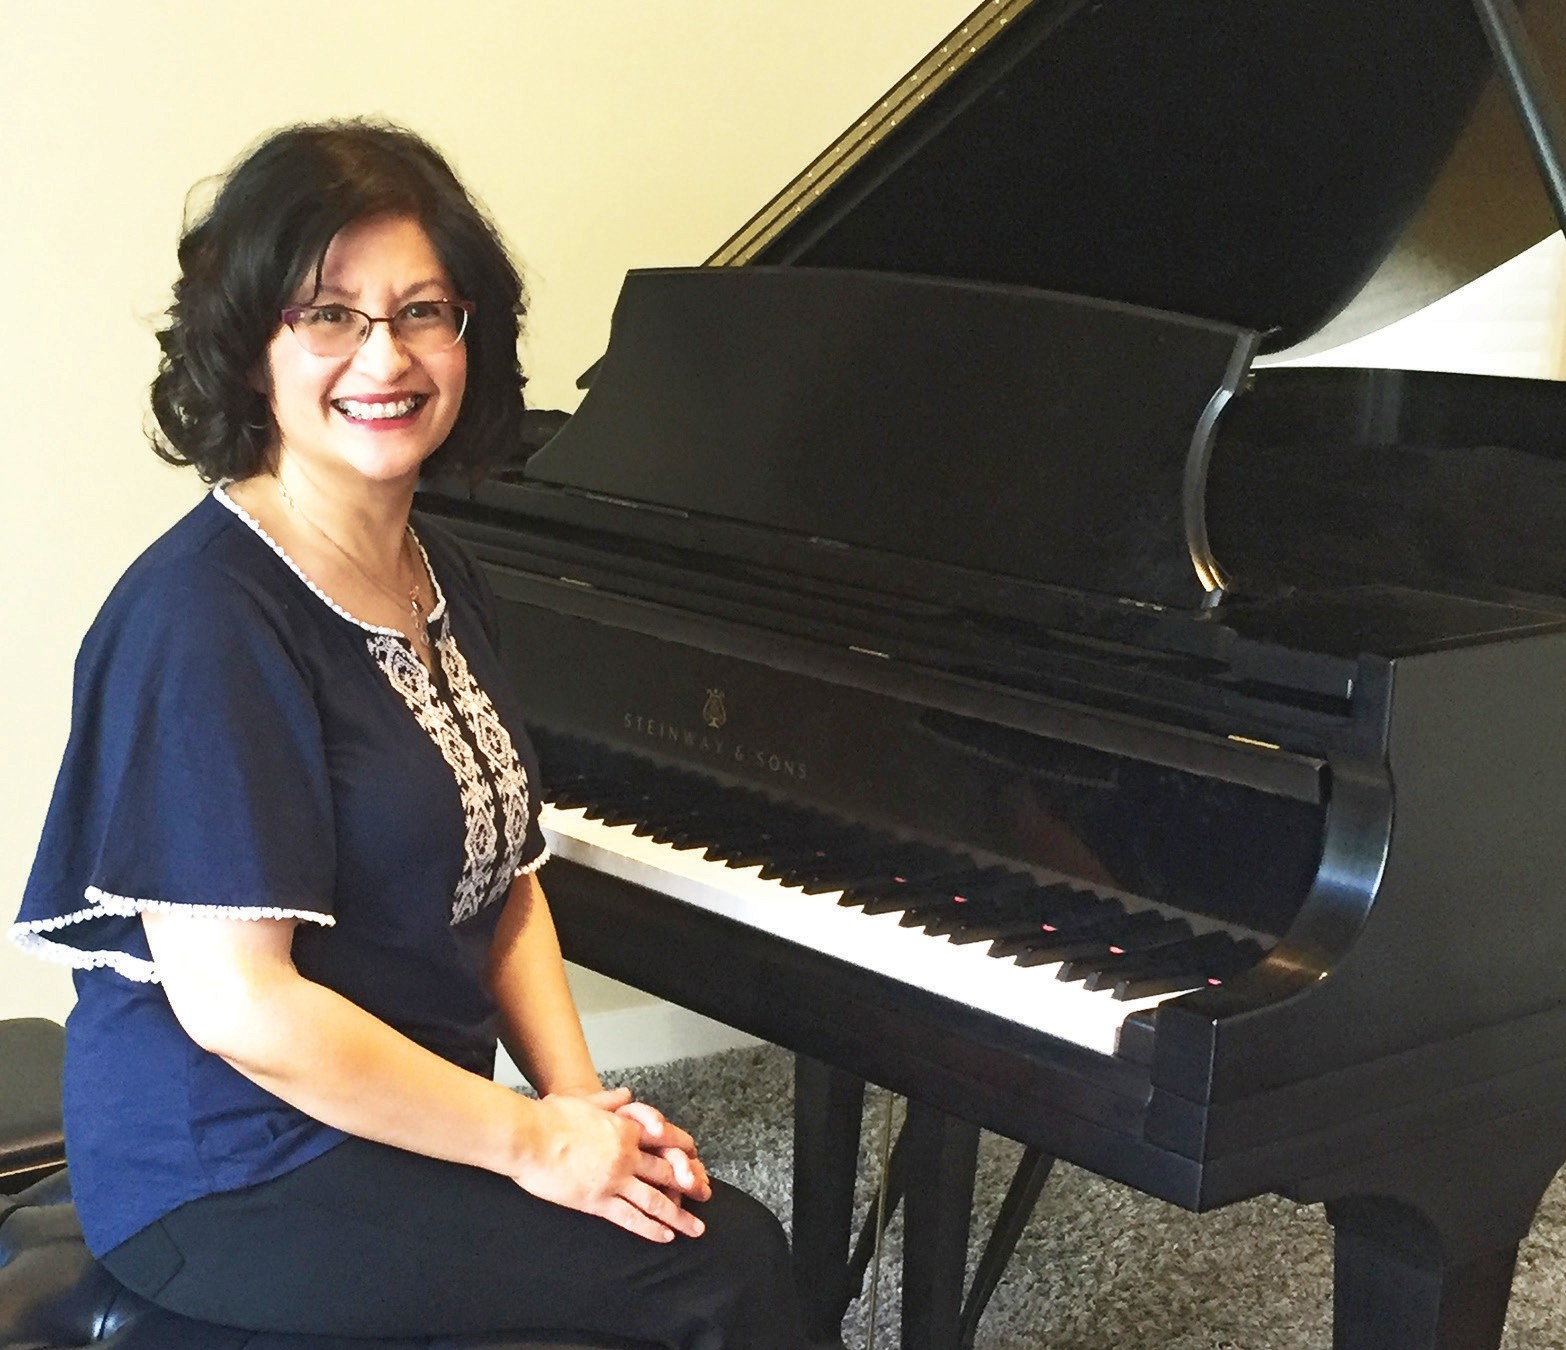 Edna Nerona will be one of 30 competitors in the San Diego International Piano Competition for Outstanding Amateurs taking place next month.